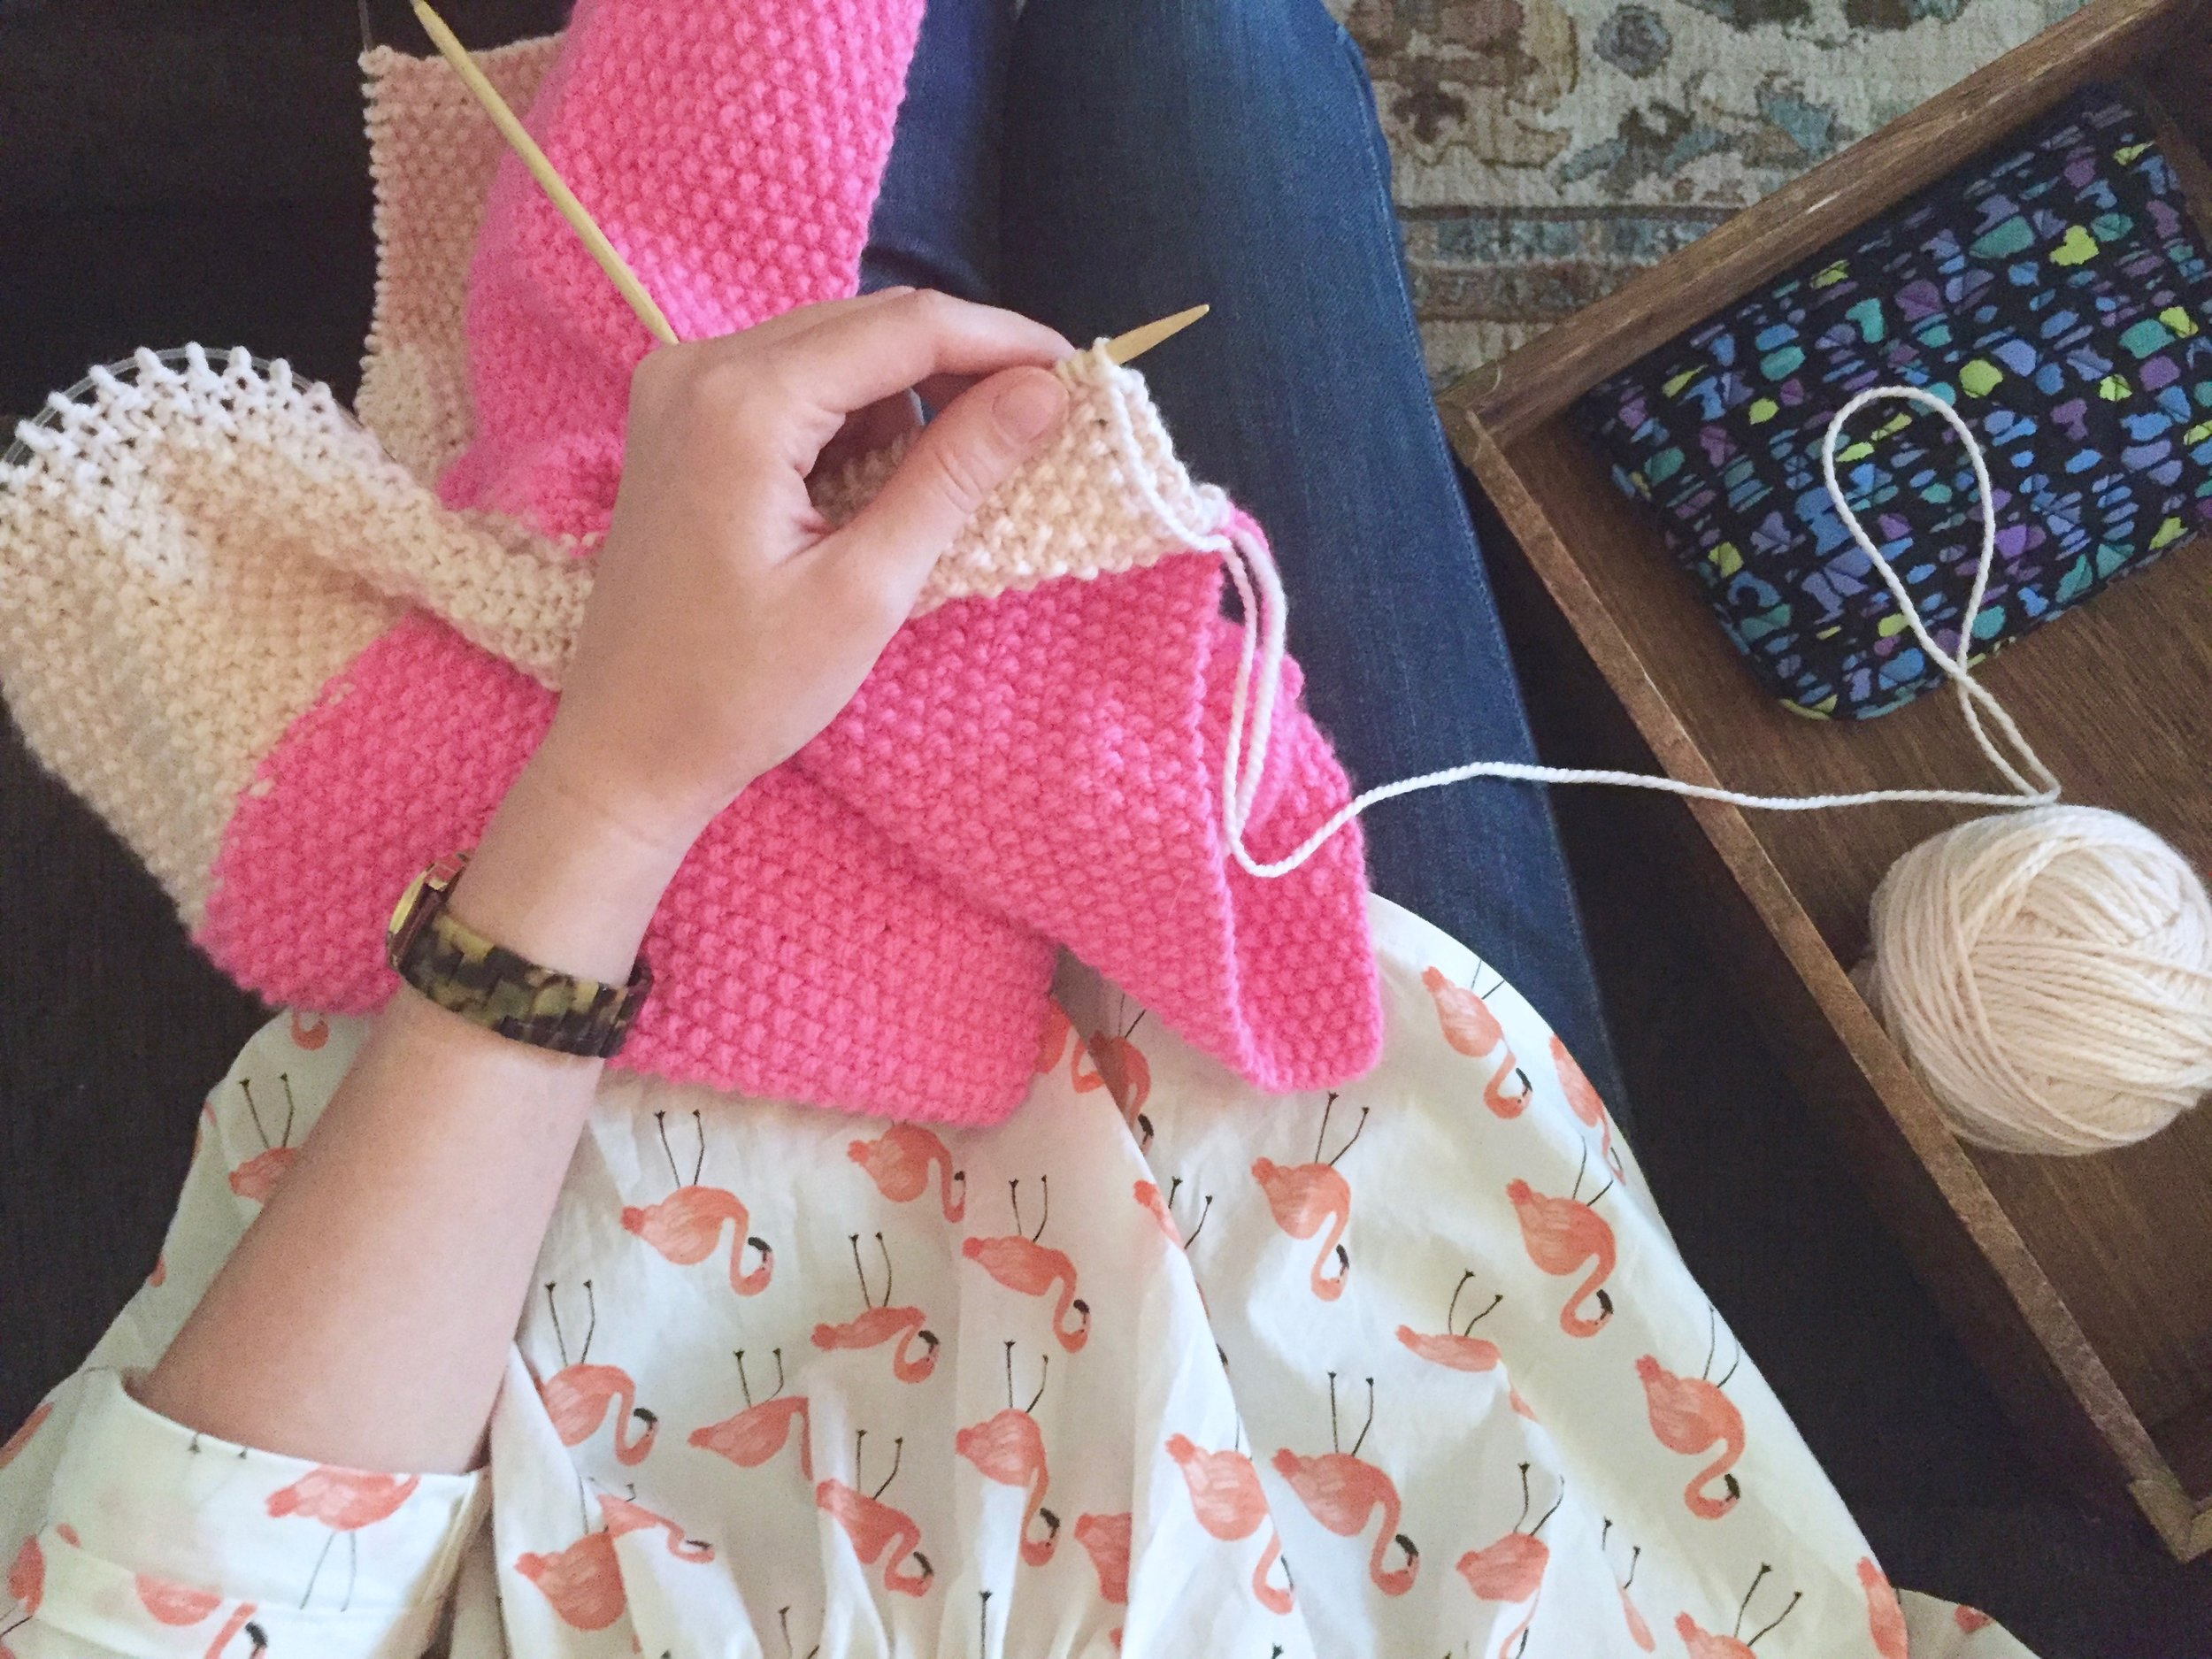 Is it really my blog if I don't post an artsy photo of me knitting while wearing my newest FO?